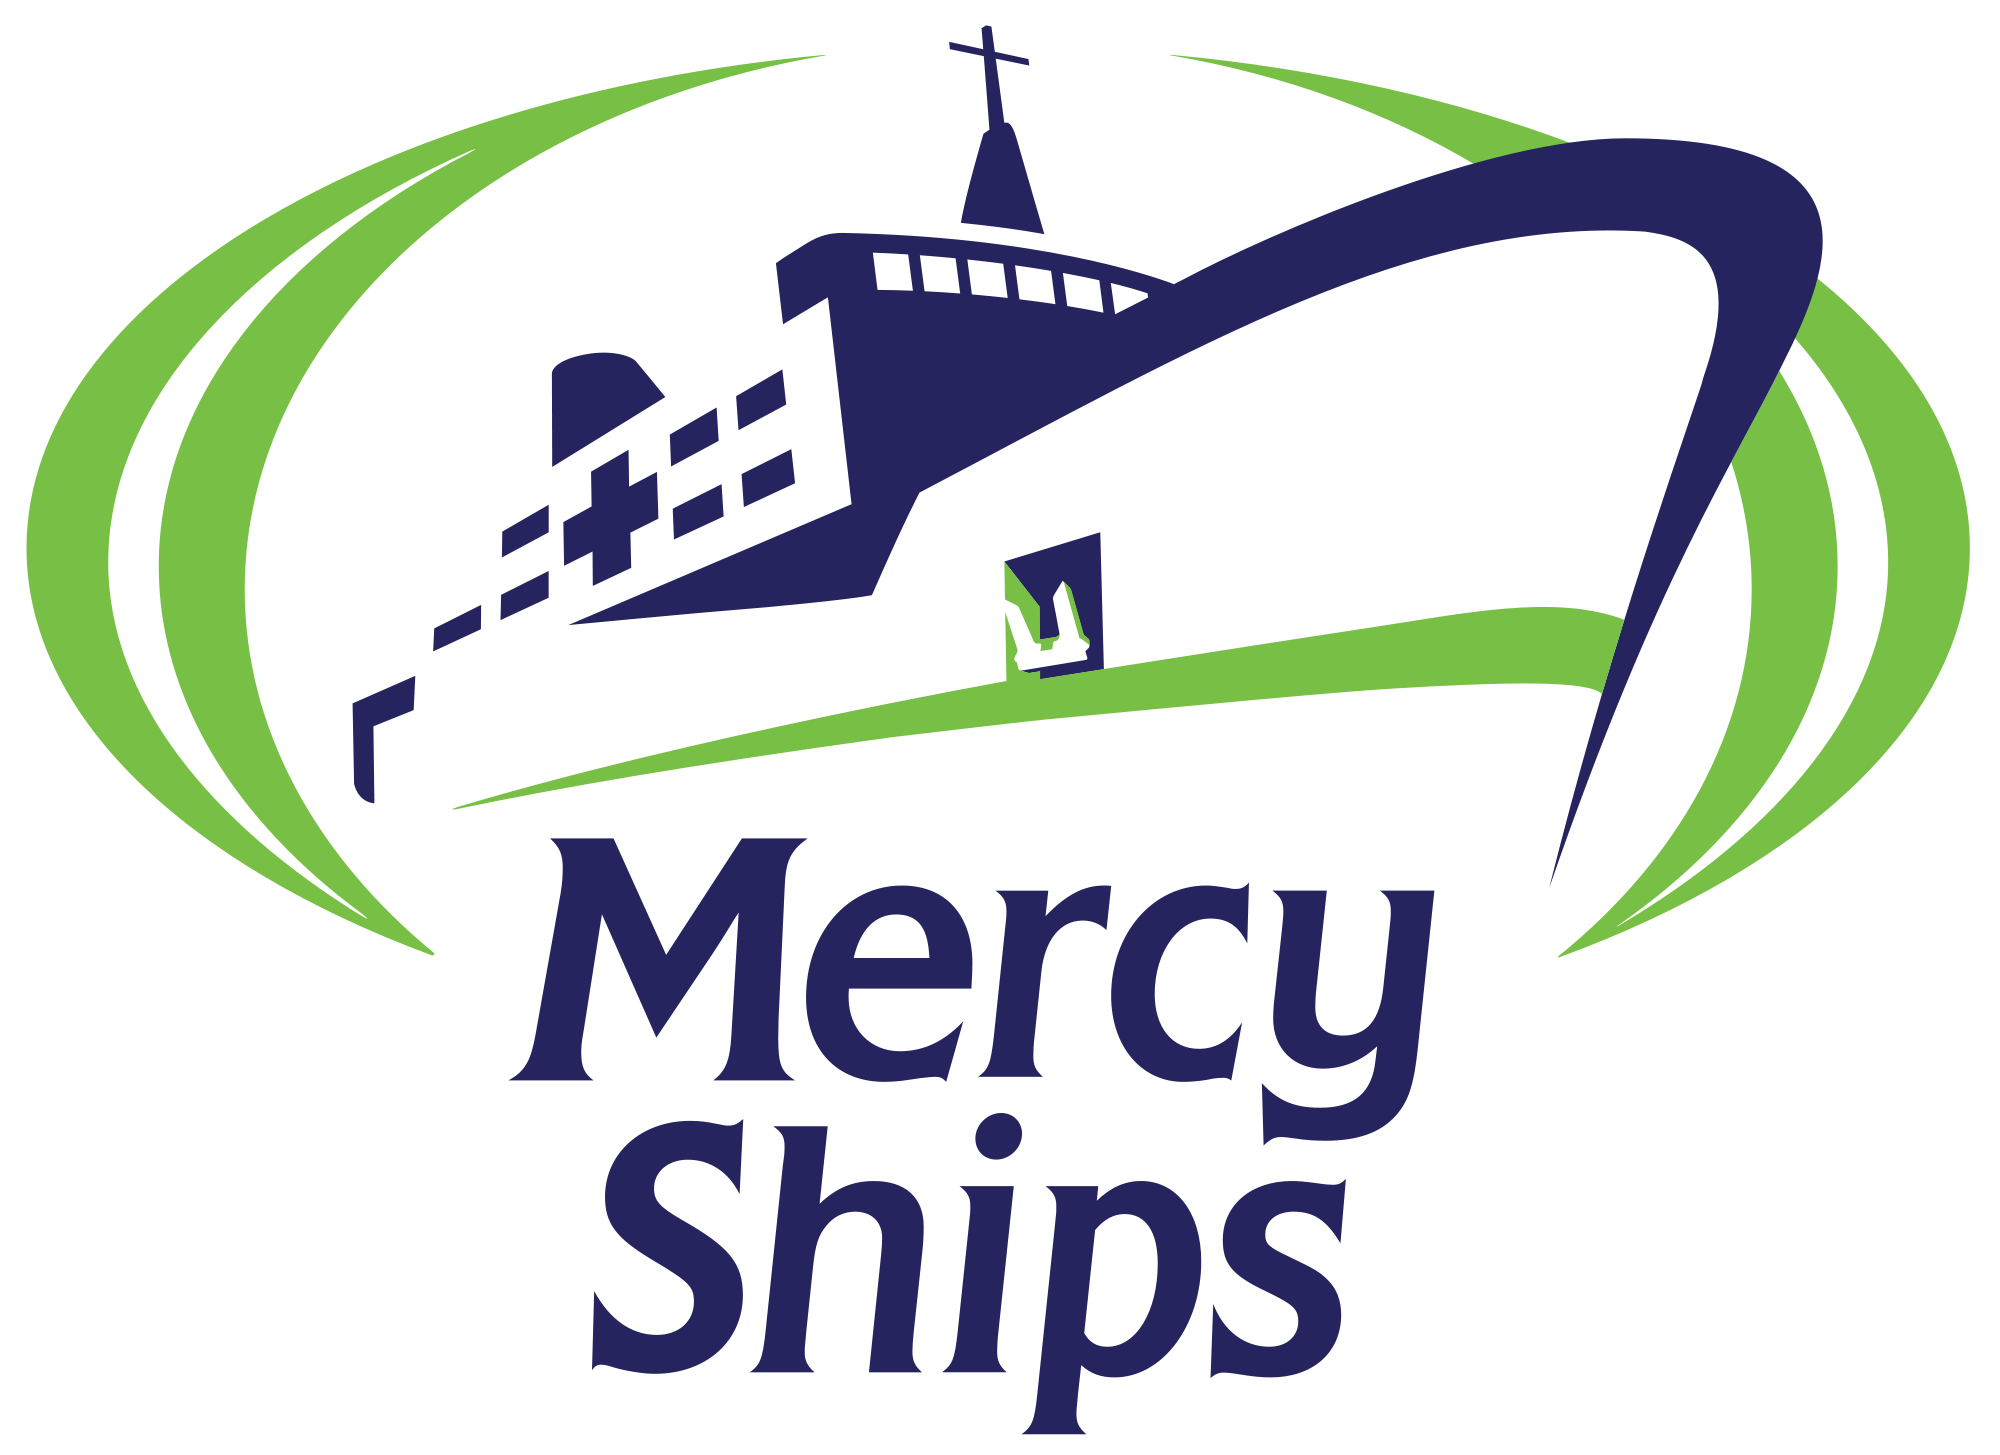 logo of Mercy Ships